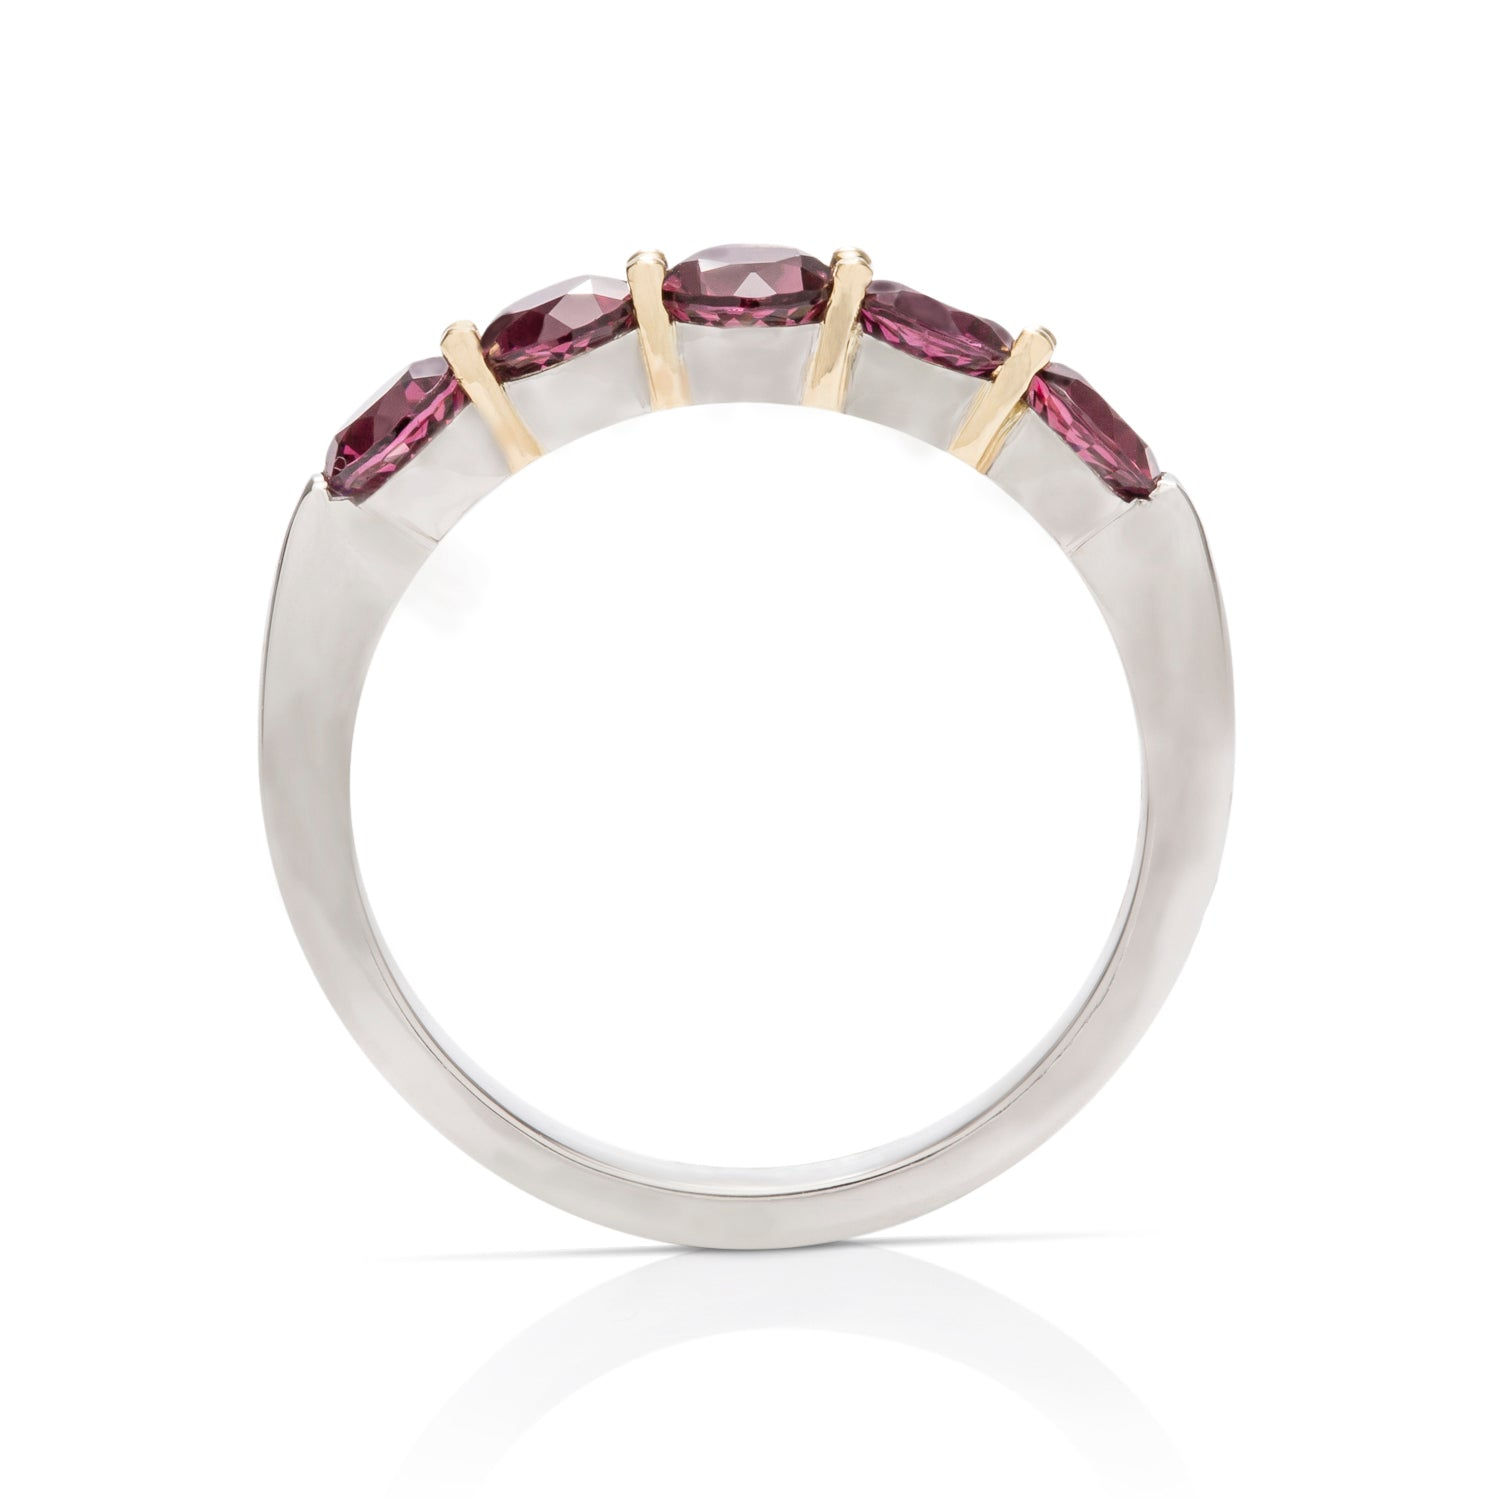 Rhodolite Garnet Platinum and Gold Ring - Charles Koll Jewellers